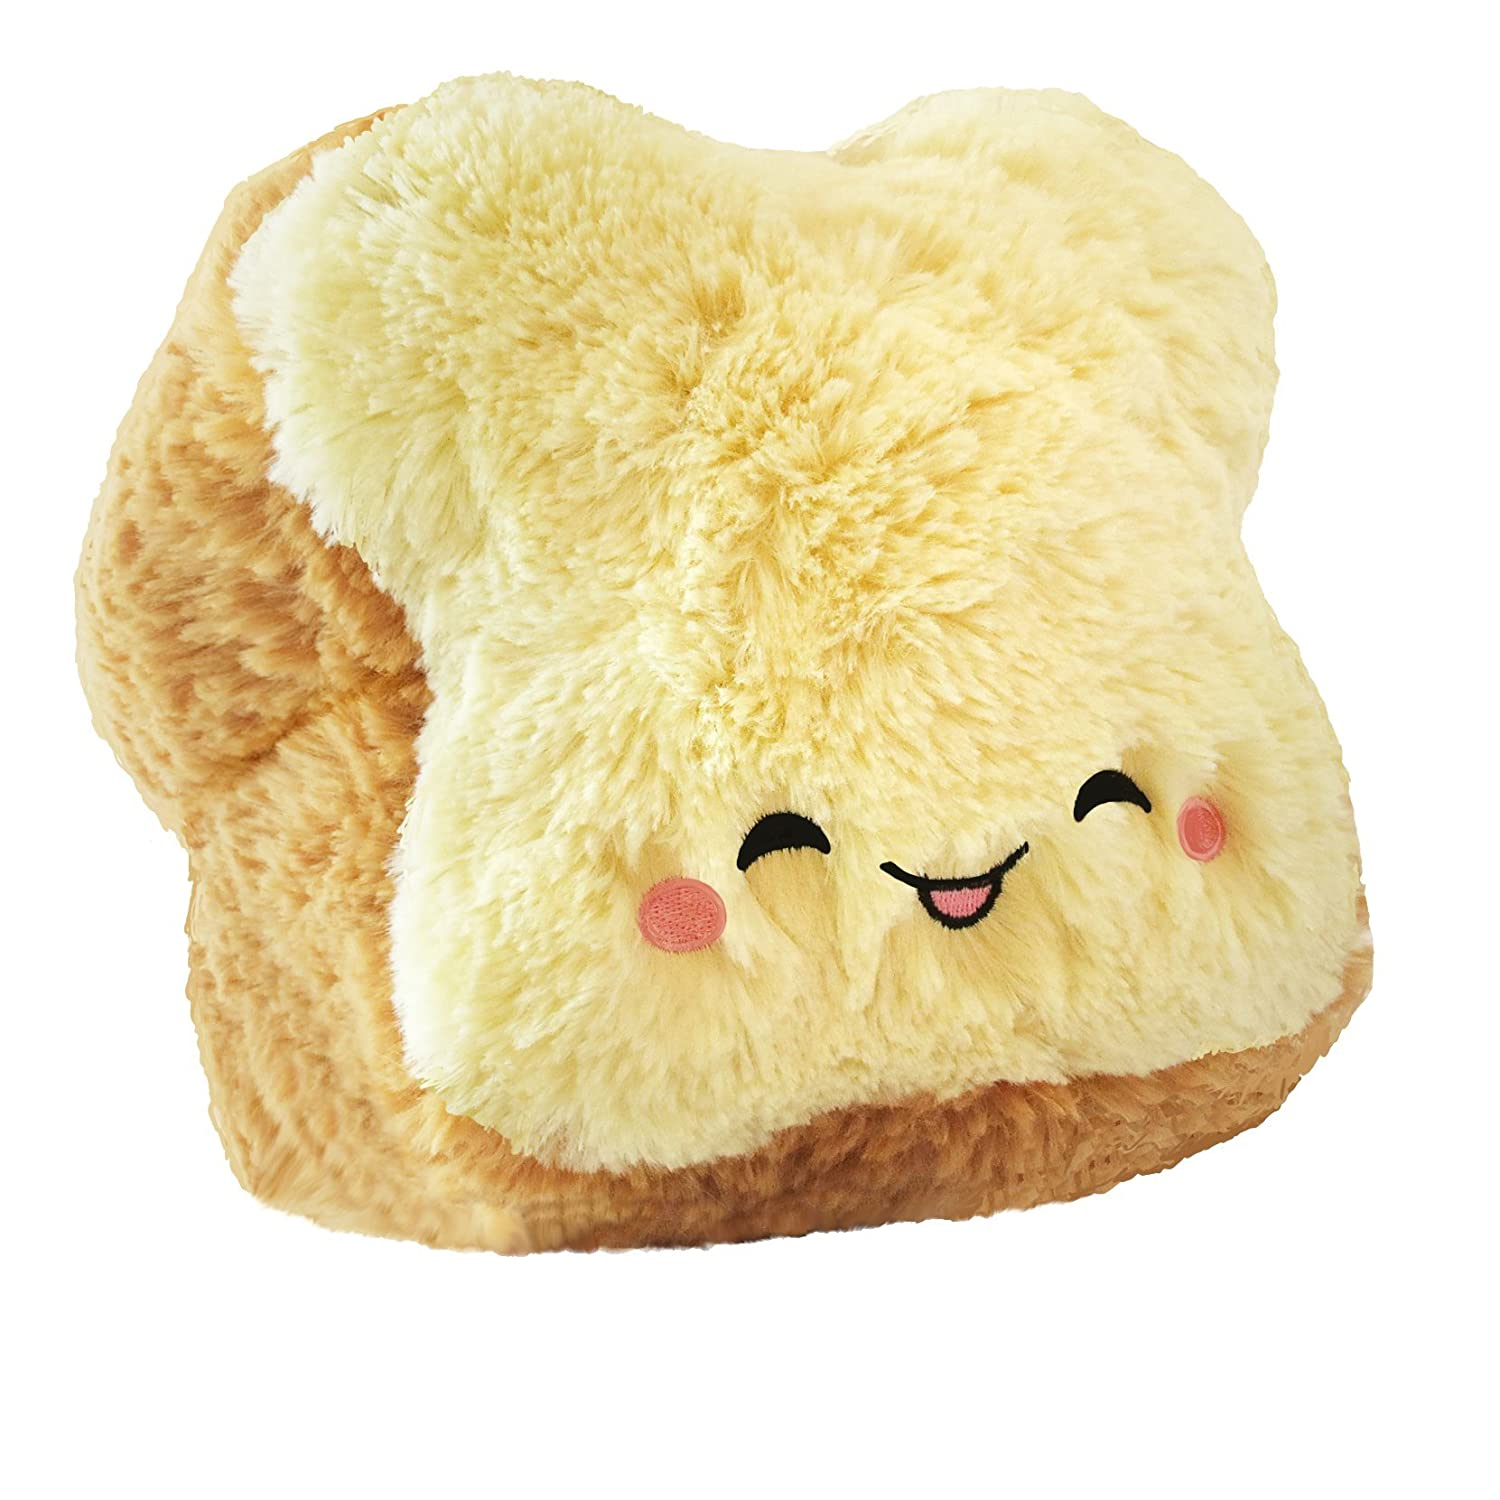 Squishable / Mini Comfort Food Food Loaf of Bread Plush – 7""